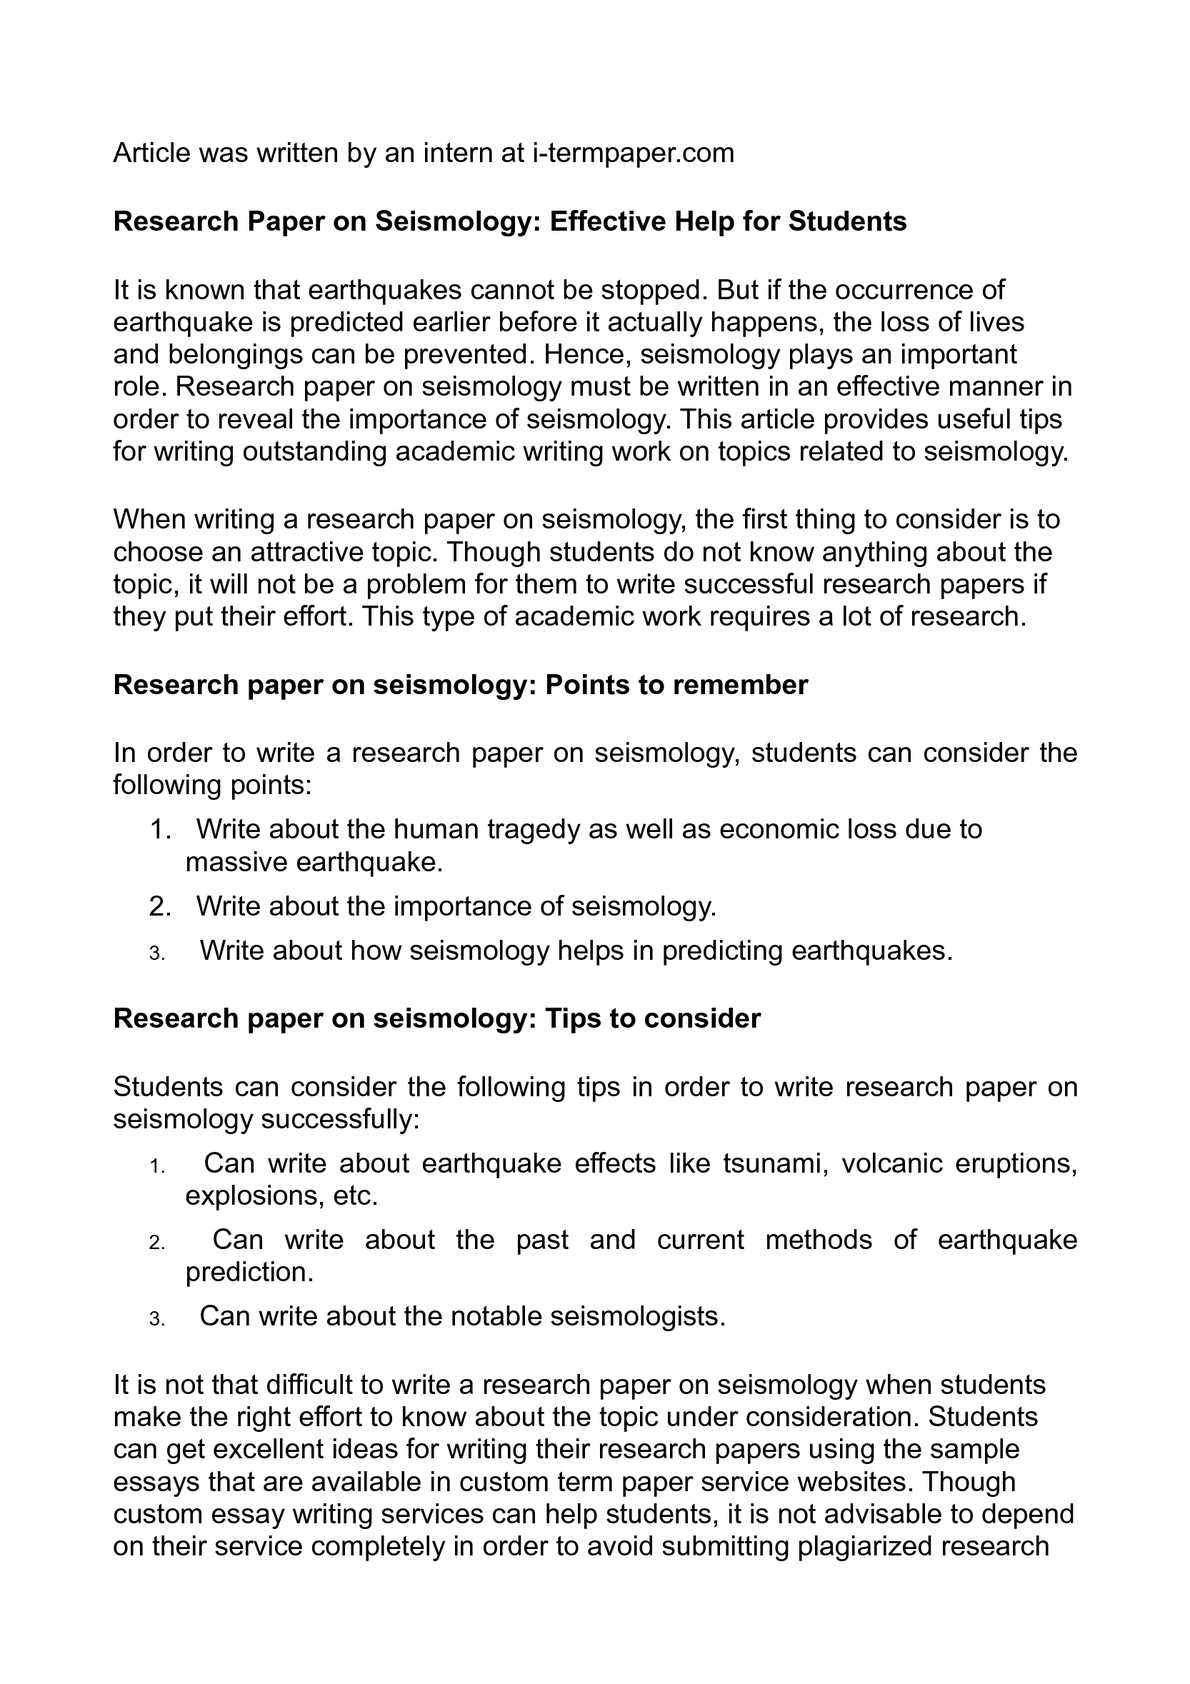 how not to plagiarize in a research paper how not to plagiarize calamatilde131acirccopyo research paper on seismology effective help for students